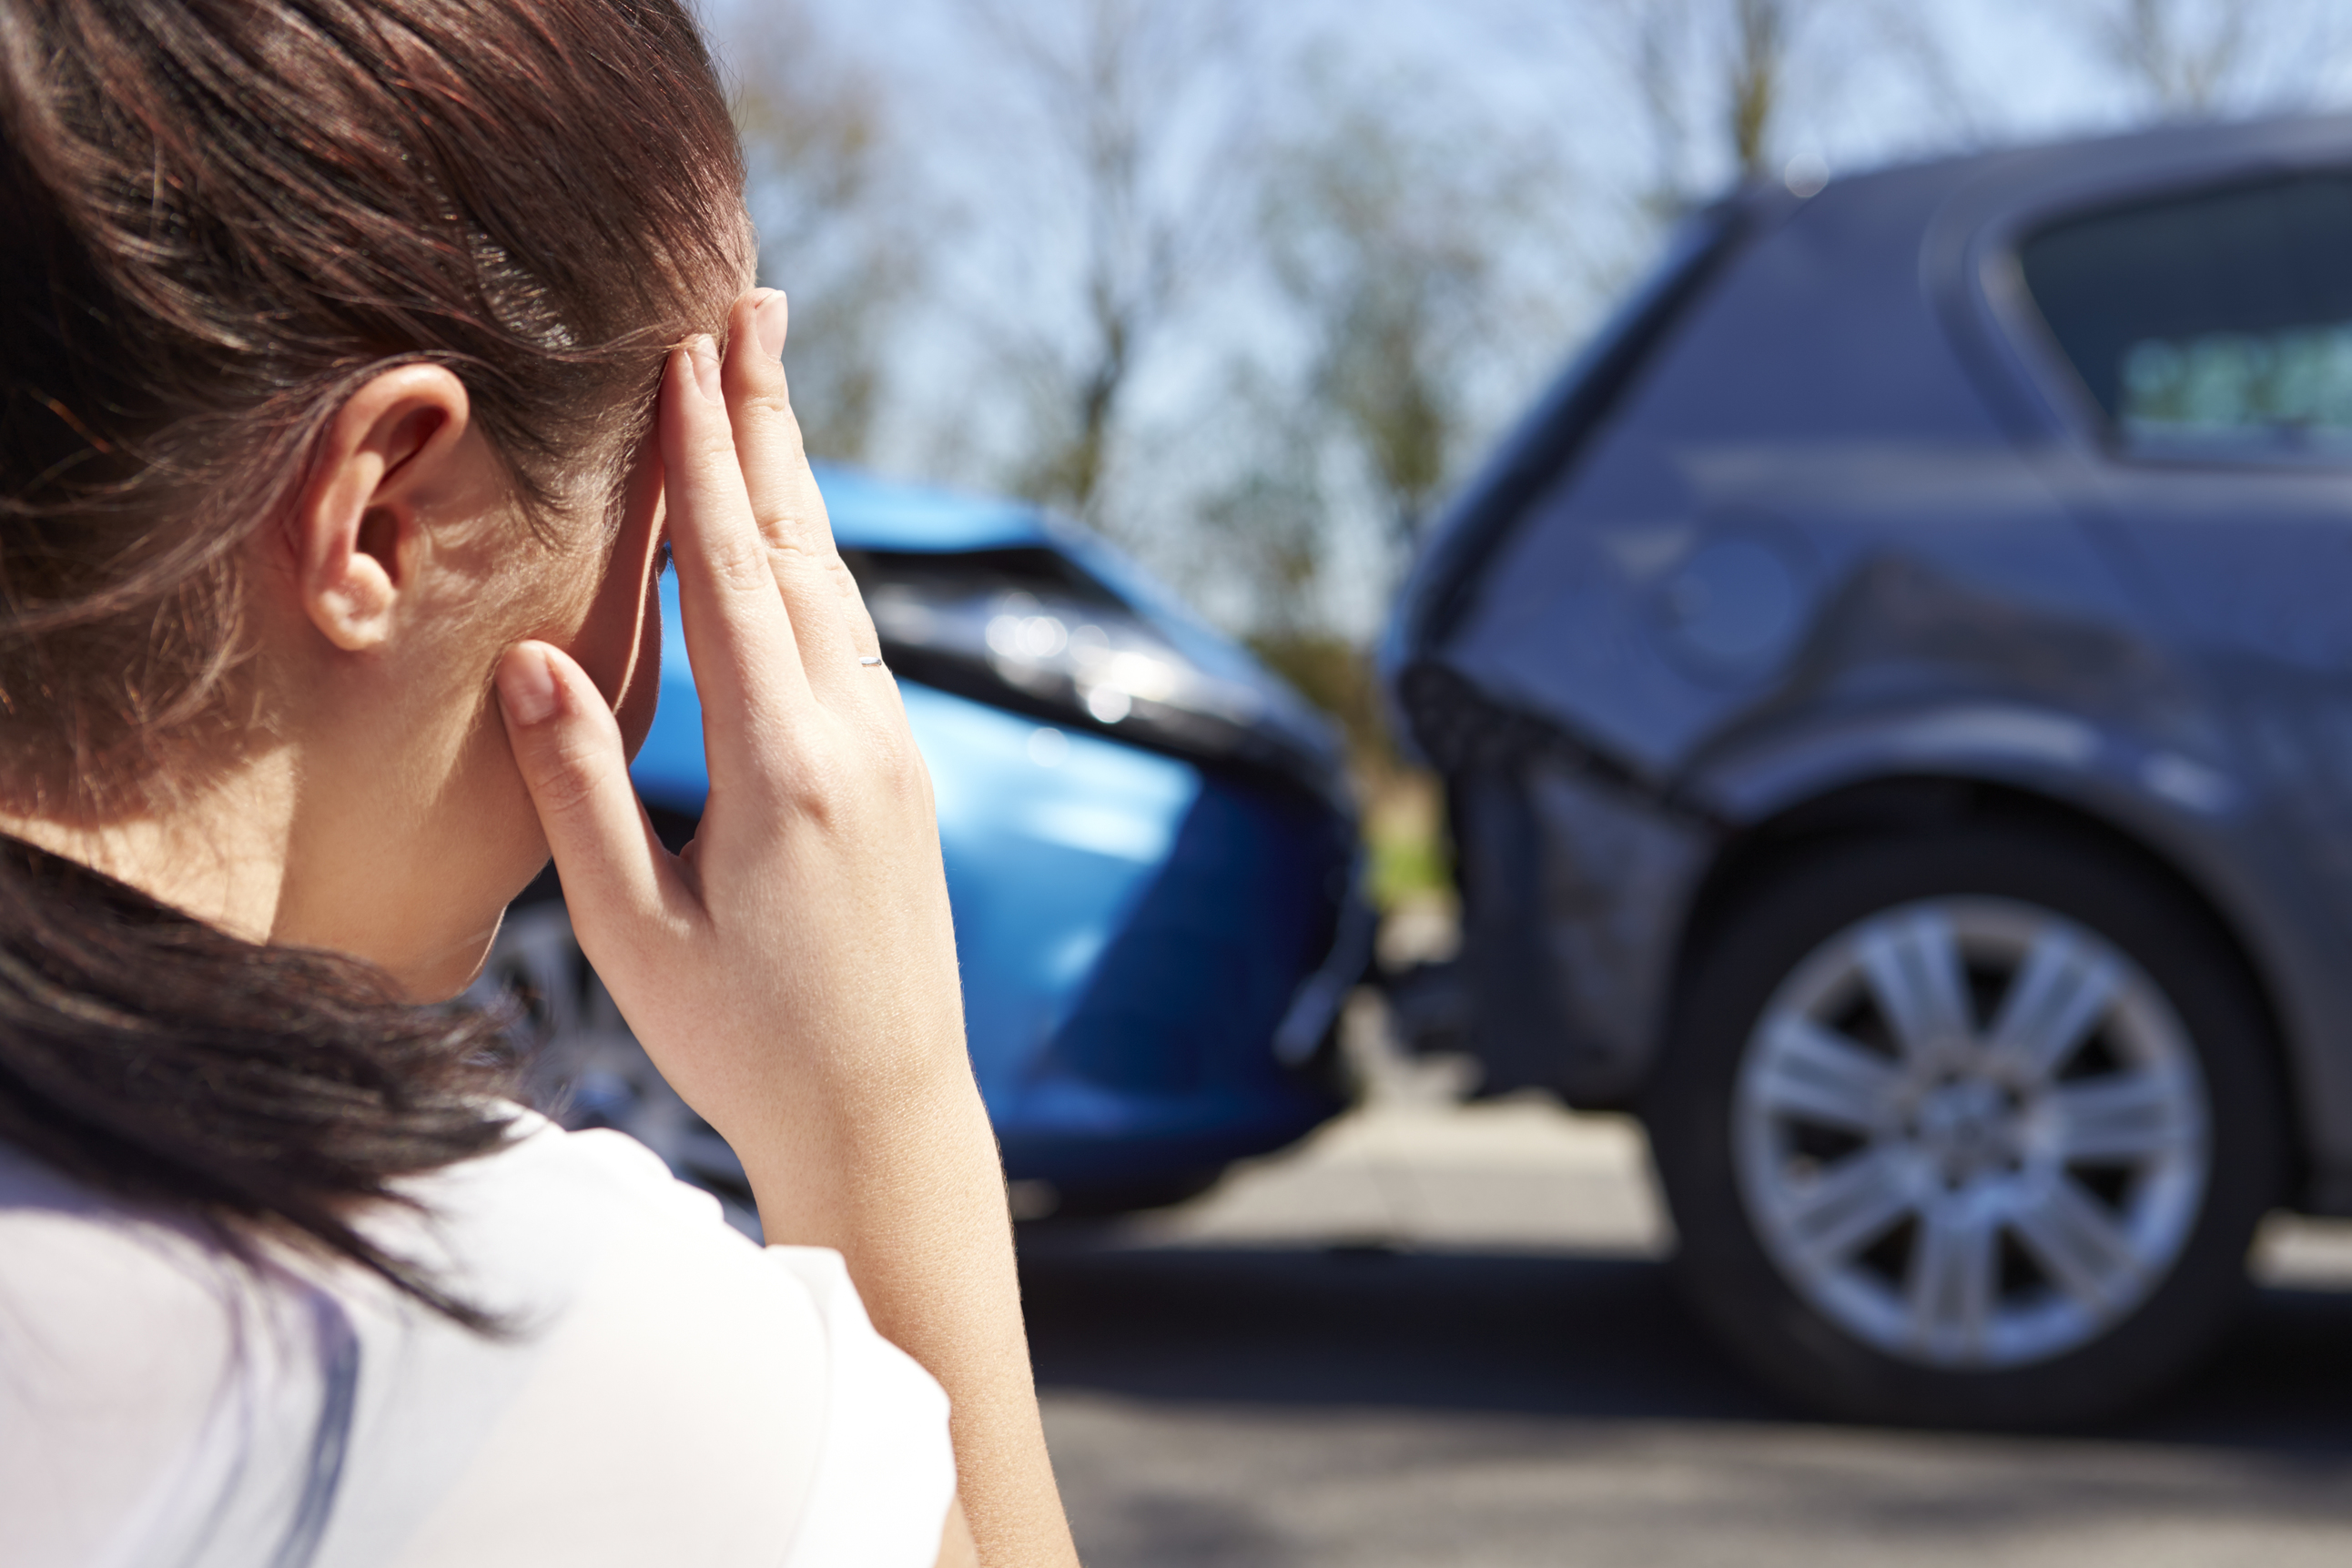 Stolen car insurance investigation process for sexual harassment